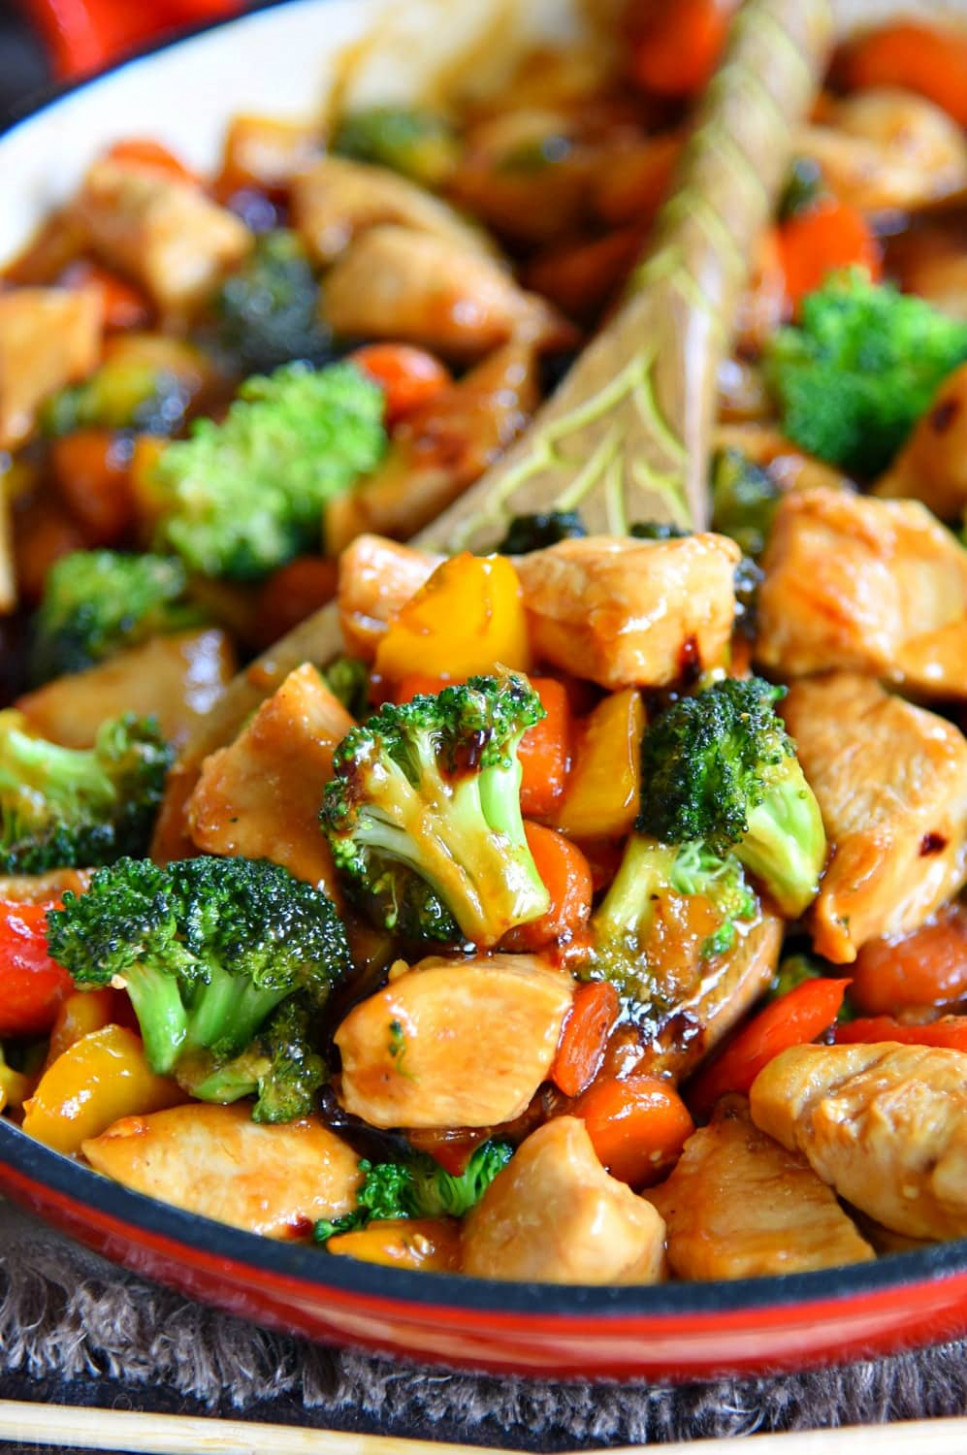 Chicken Stir Fry Recipe - stir fry recipes vegetarian